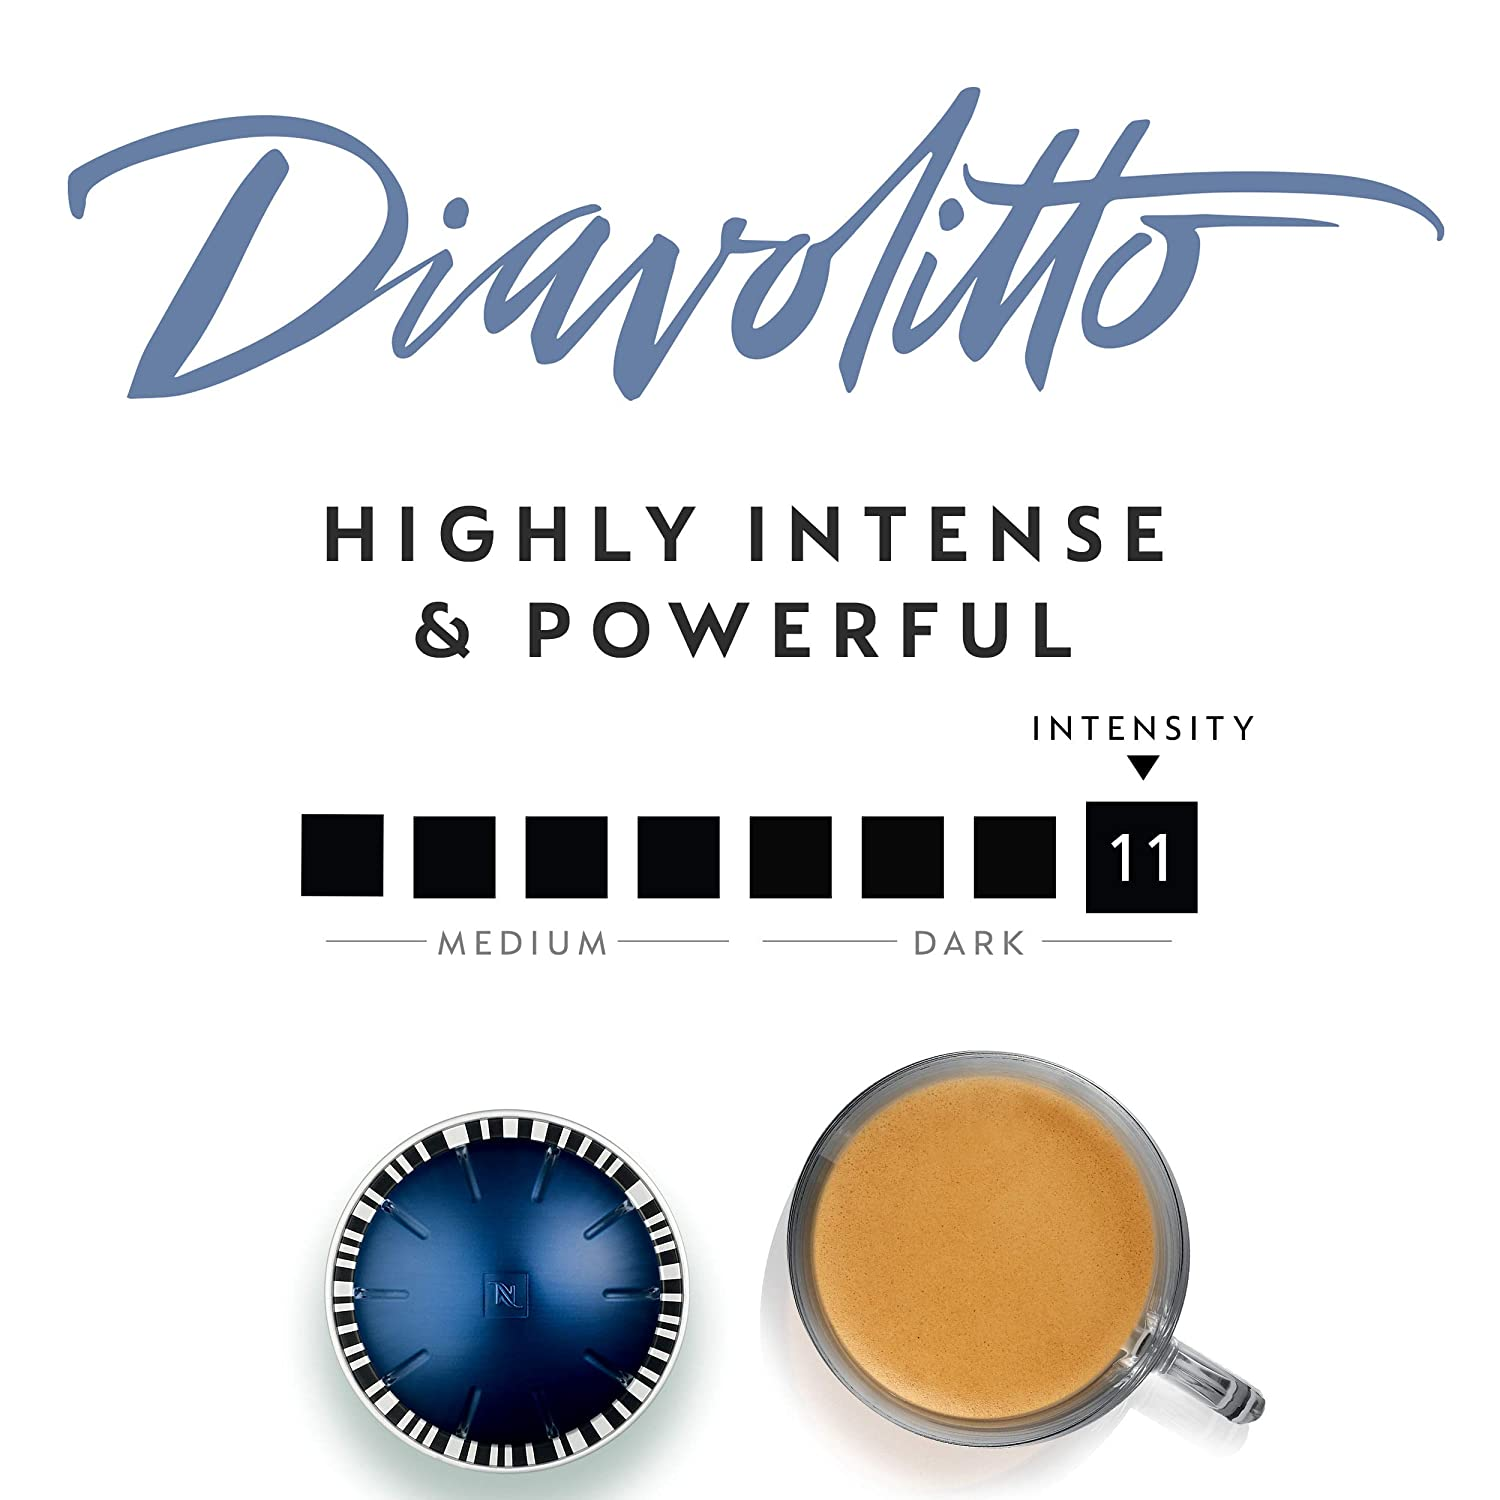 Diavolitto Best Nespresso Capsules Review